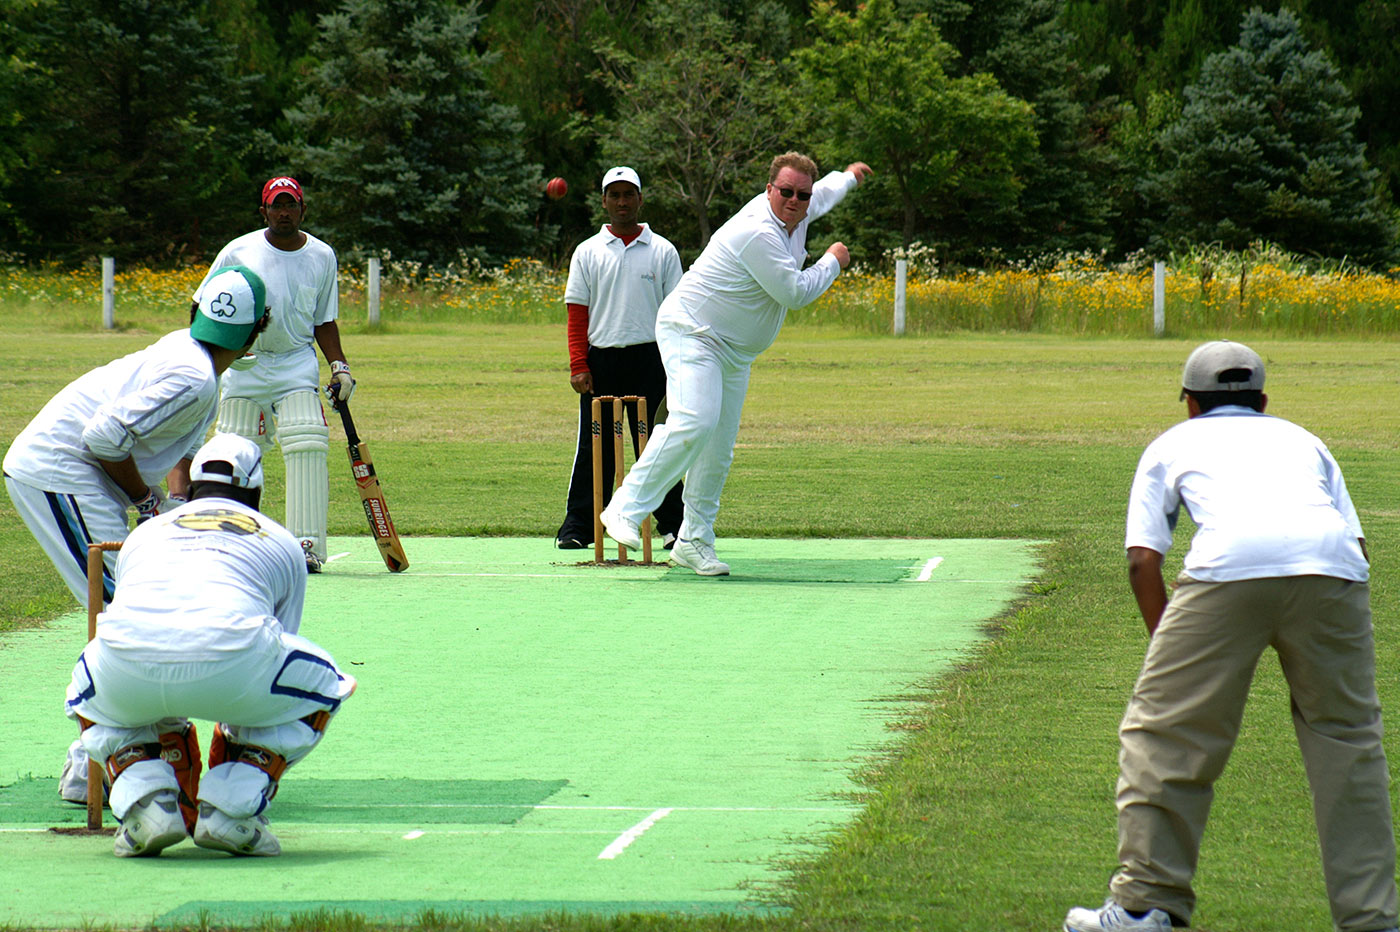 Edward Fox bowls on the cricket ground he built